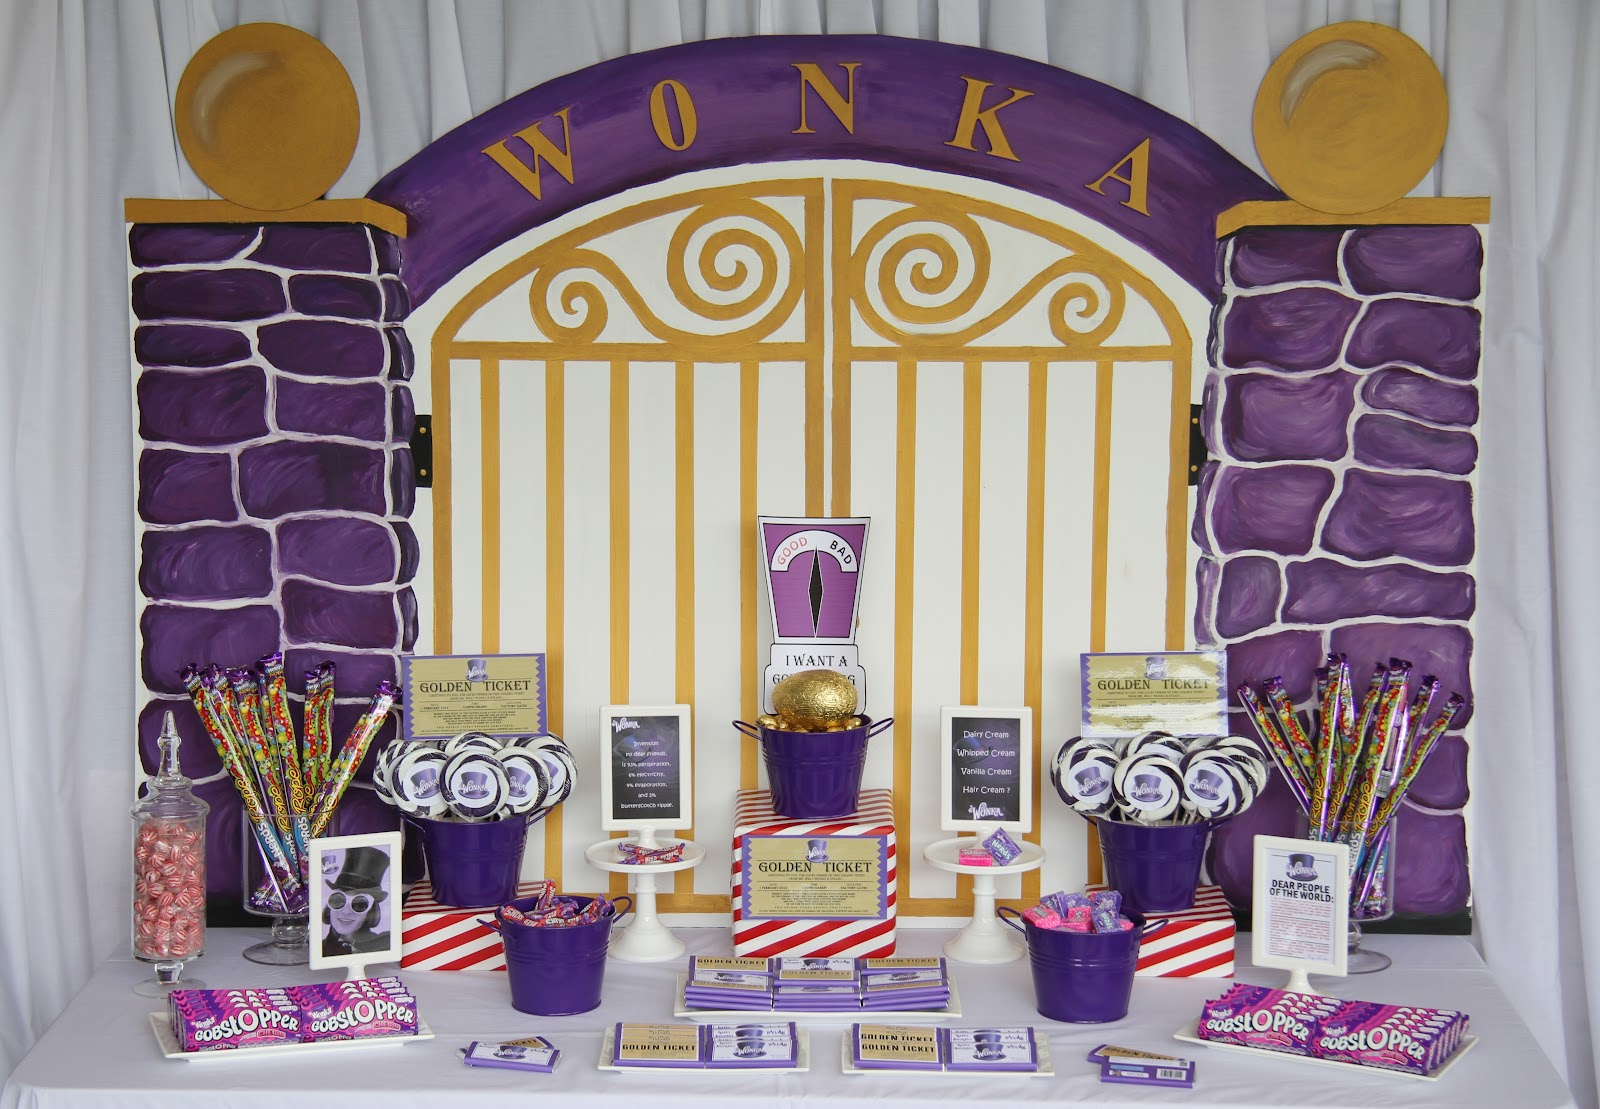 Leonie's Cakes and Parties . . . . .: WONKA Golden Ticket ...